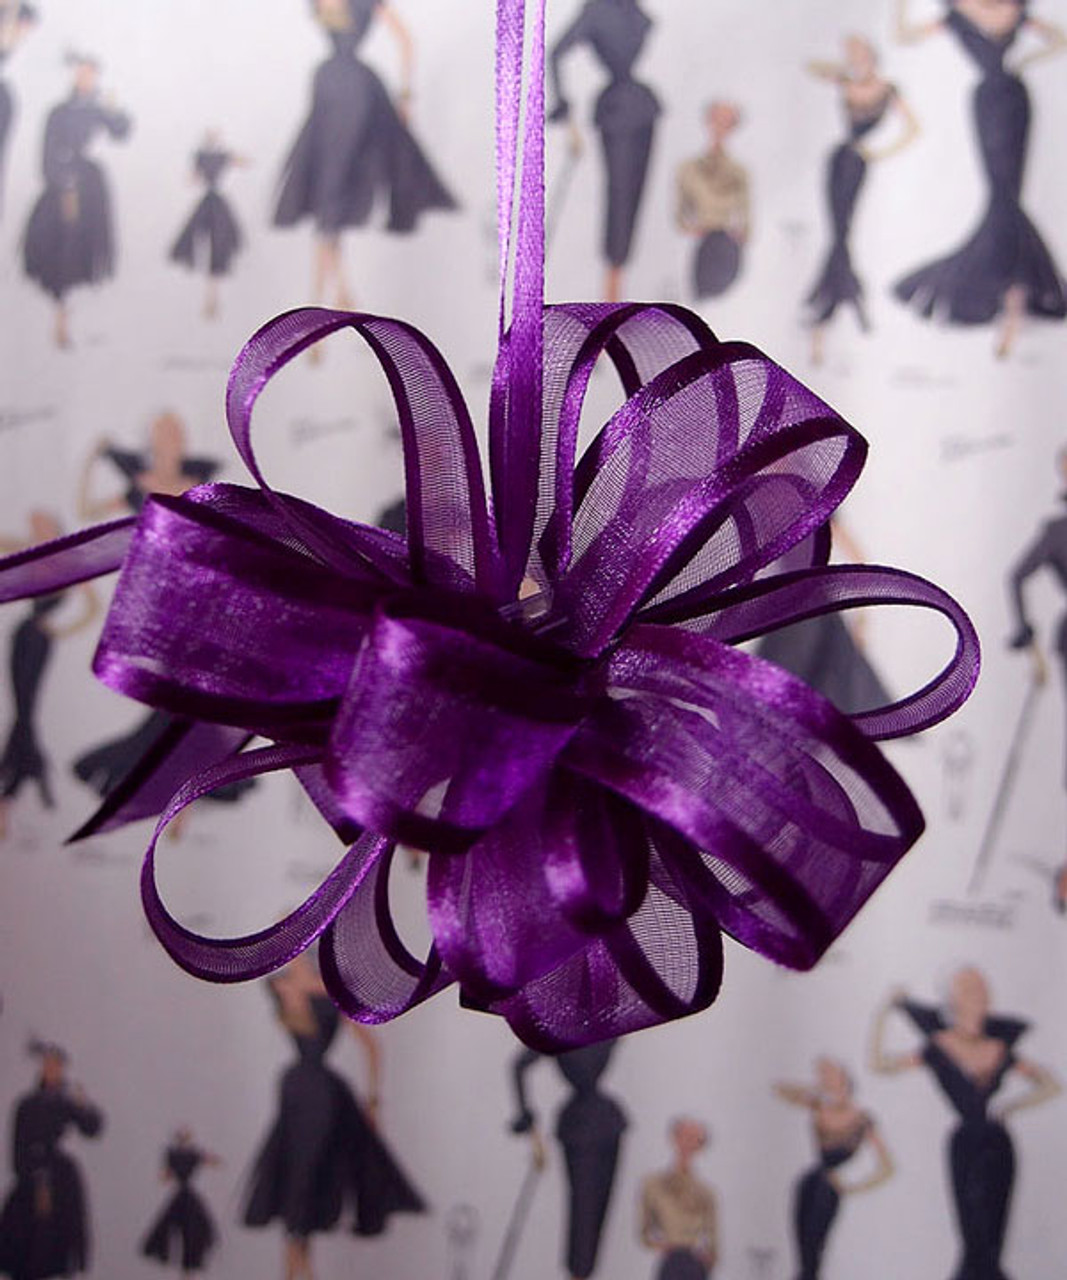 Wholesale Pull Bows, Purple Pull Bows, Sheer with Satin Edge Pull Bow | Packaging Decor